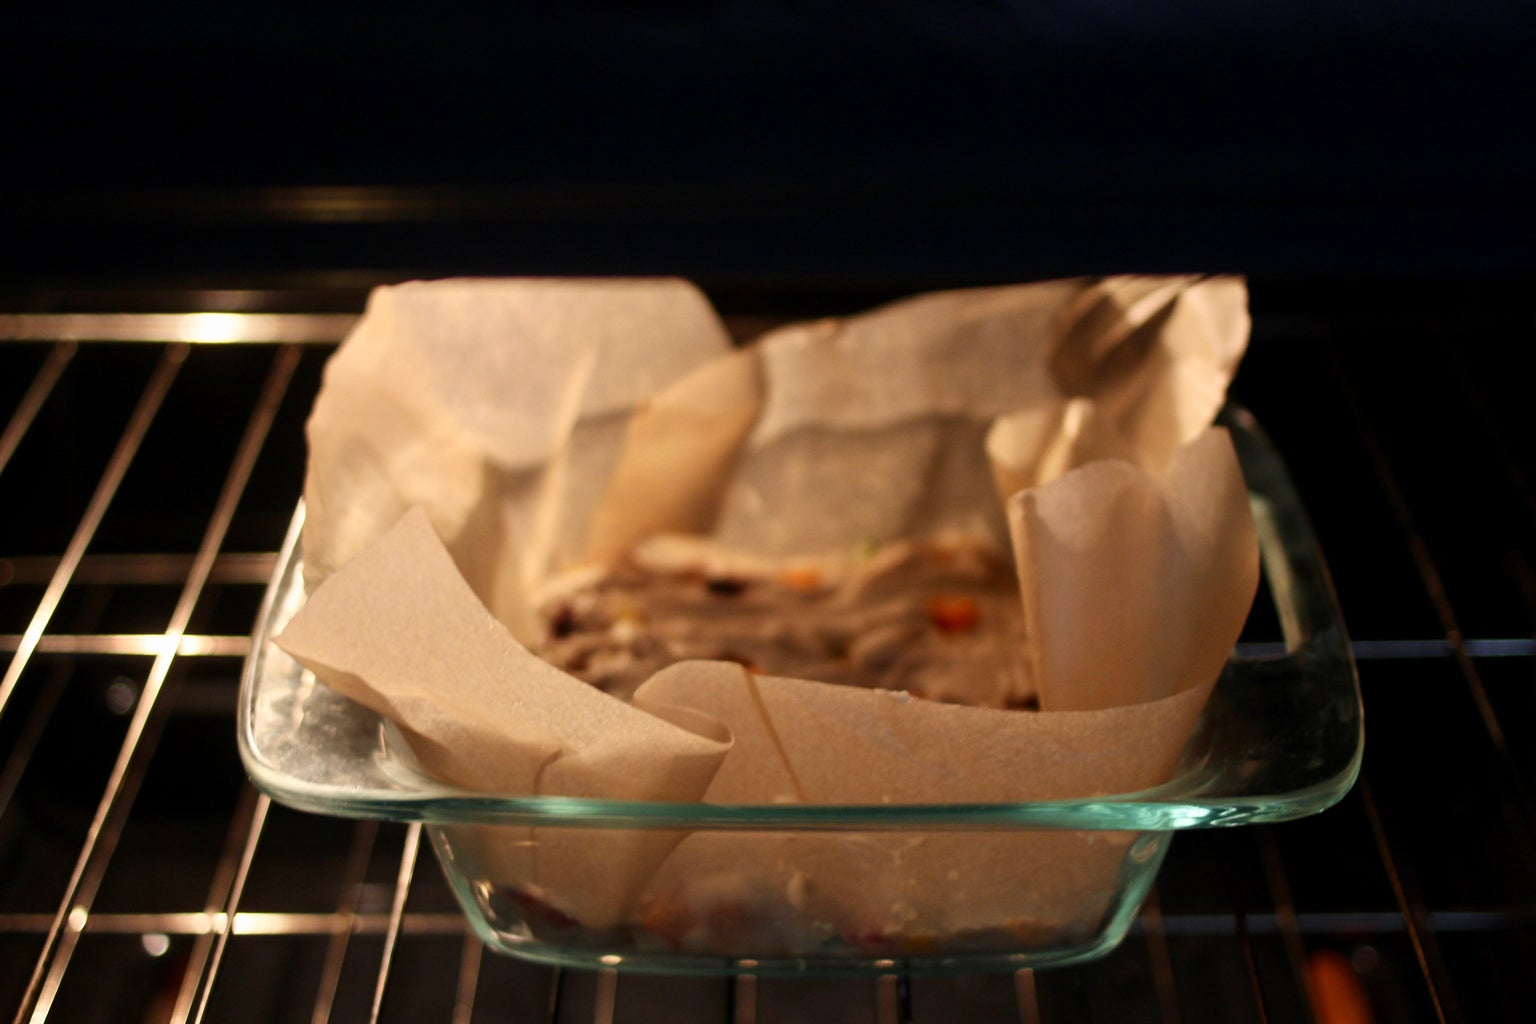 Place on the Center Rack in the Oven.